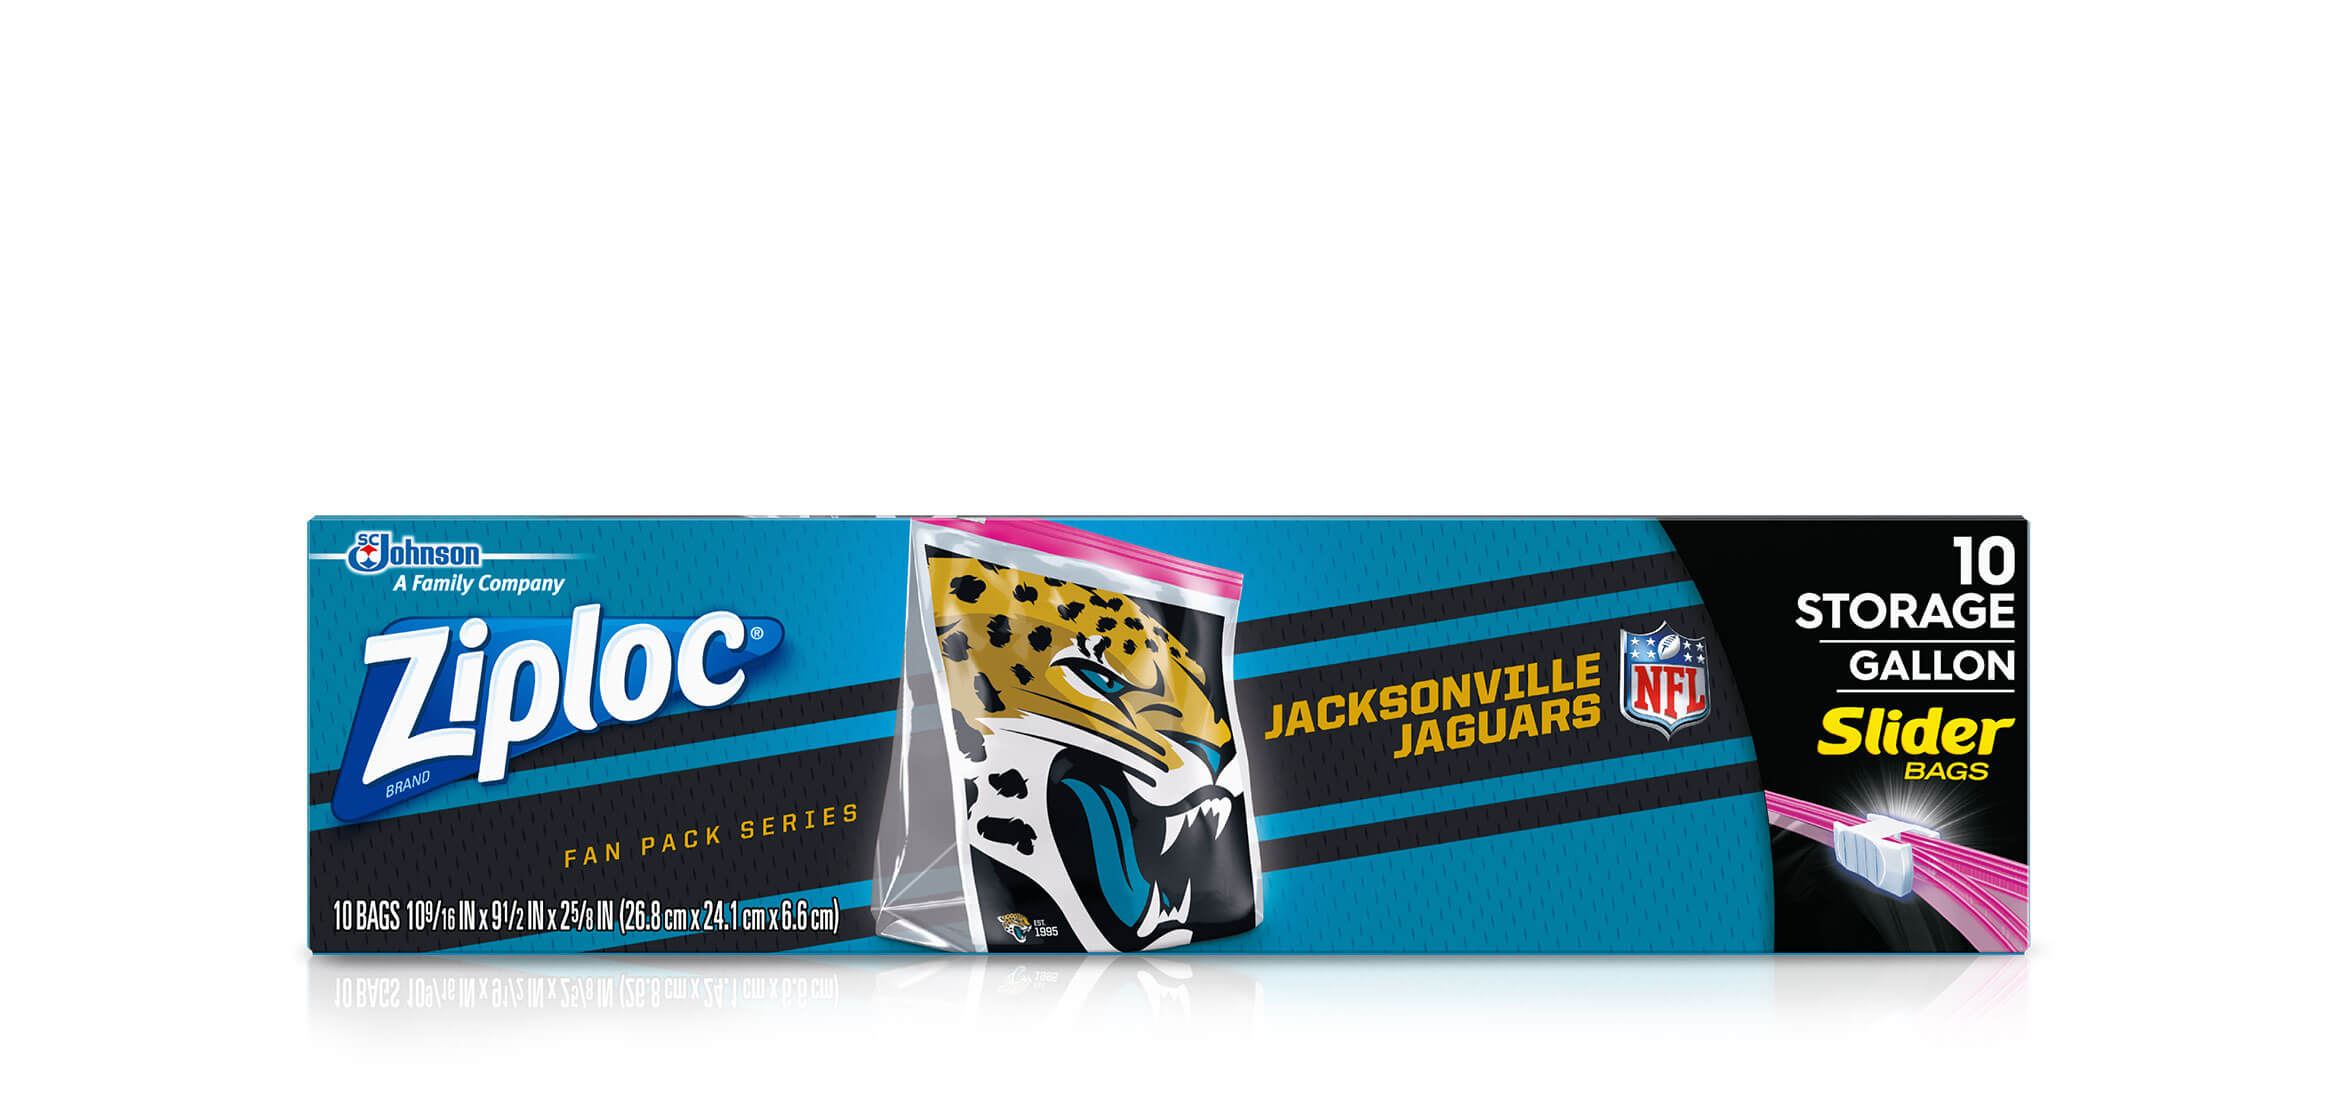 Jacksonville-Jaguars-Slider-Storage-Gallon-Hero-2X